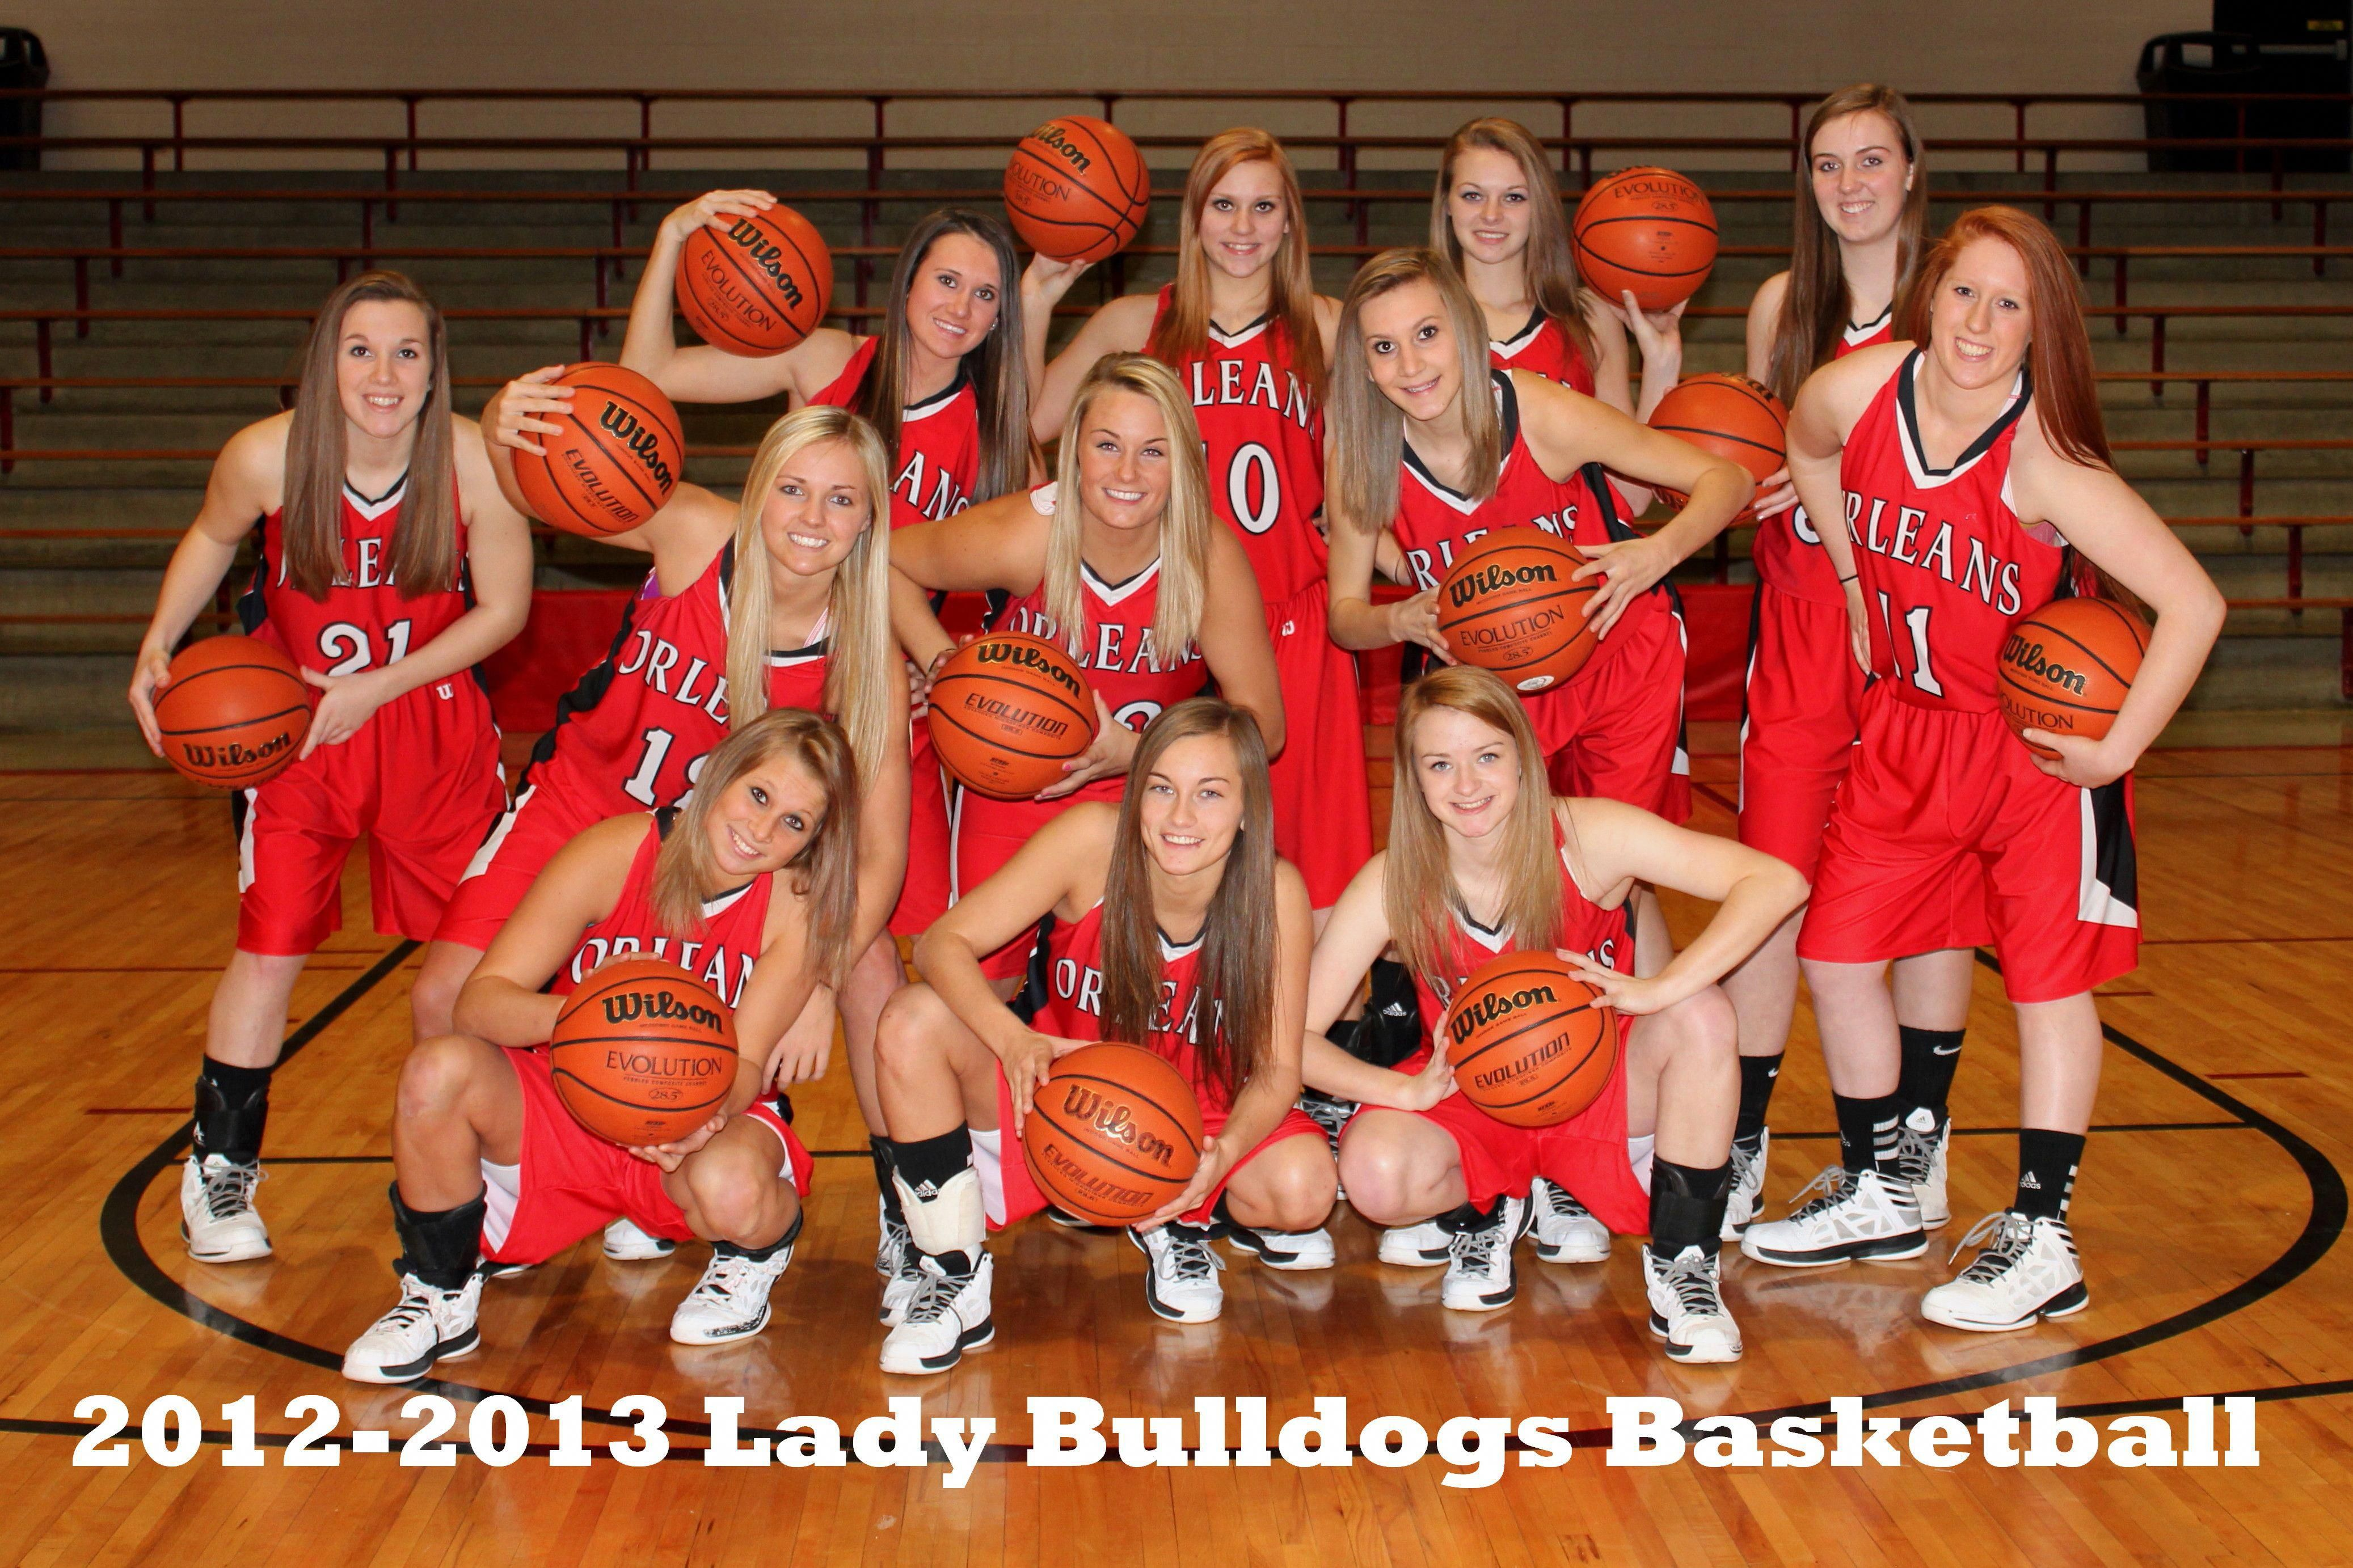 Girls Basketball Team Pictures Photography Girlsbasketball Team Pictures Sports Team Photography Basketball Team Pictures